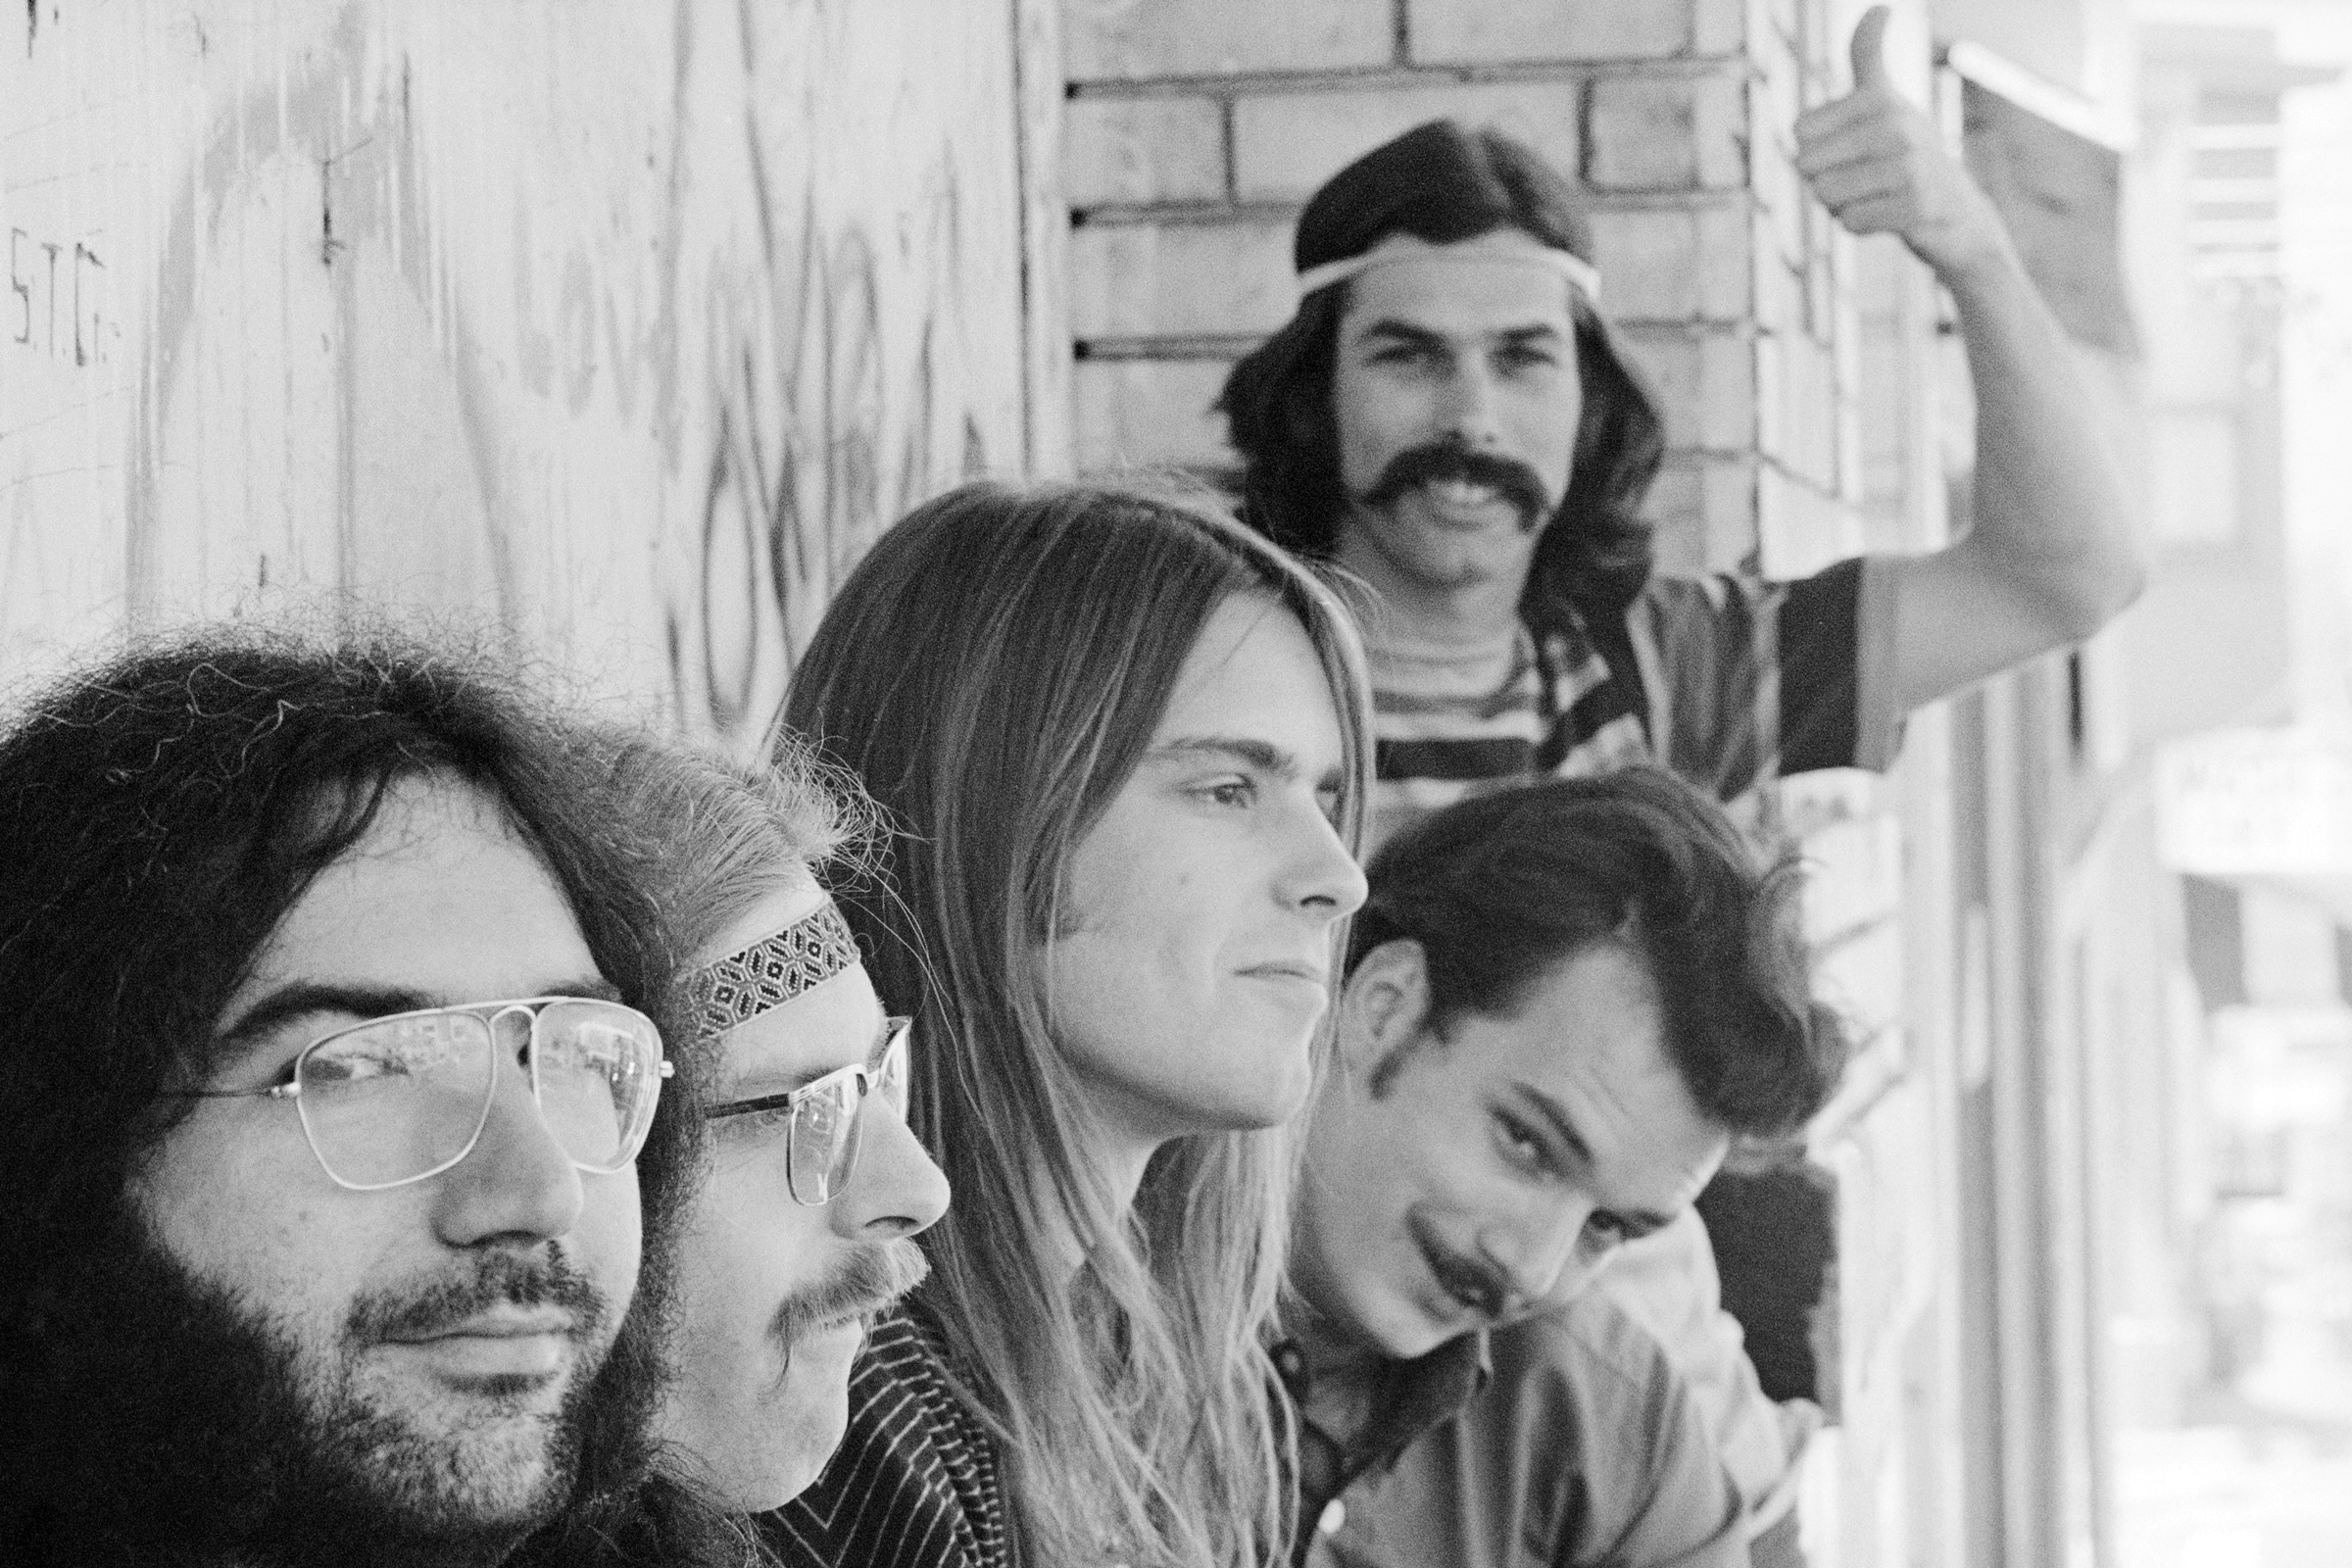 UNITED STATES - CIRCA 1968:  1968, California, San Francisco, Grateful Dead, L-R: Jerry Garcia, Phil Lesh, Bob Weir, Bill Kreutzmann, Mickey Hart (standing).  ((Photo by Malcolm Lubliner/Michael Ochs Archives/Getty Images))